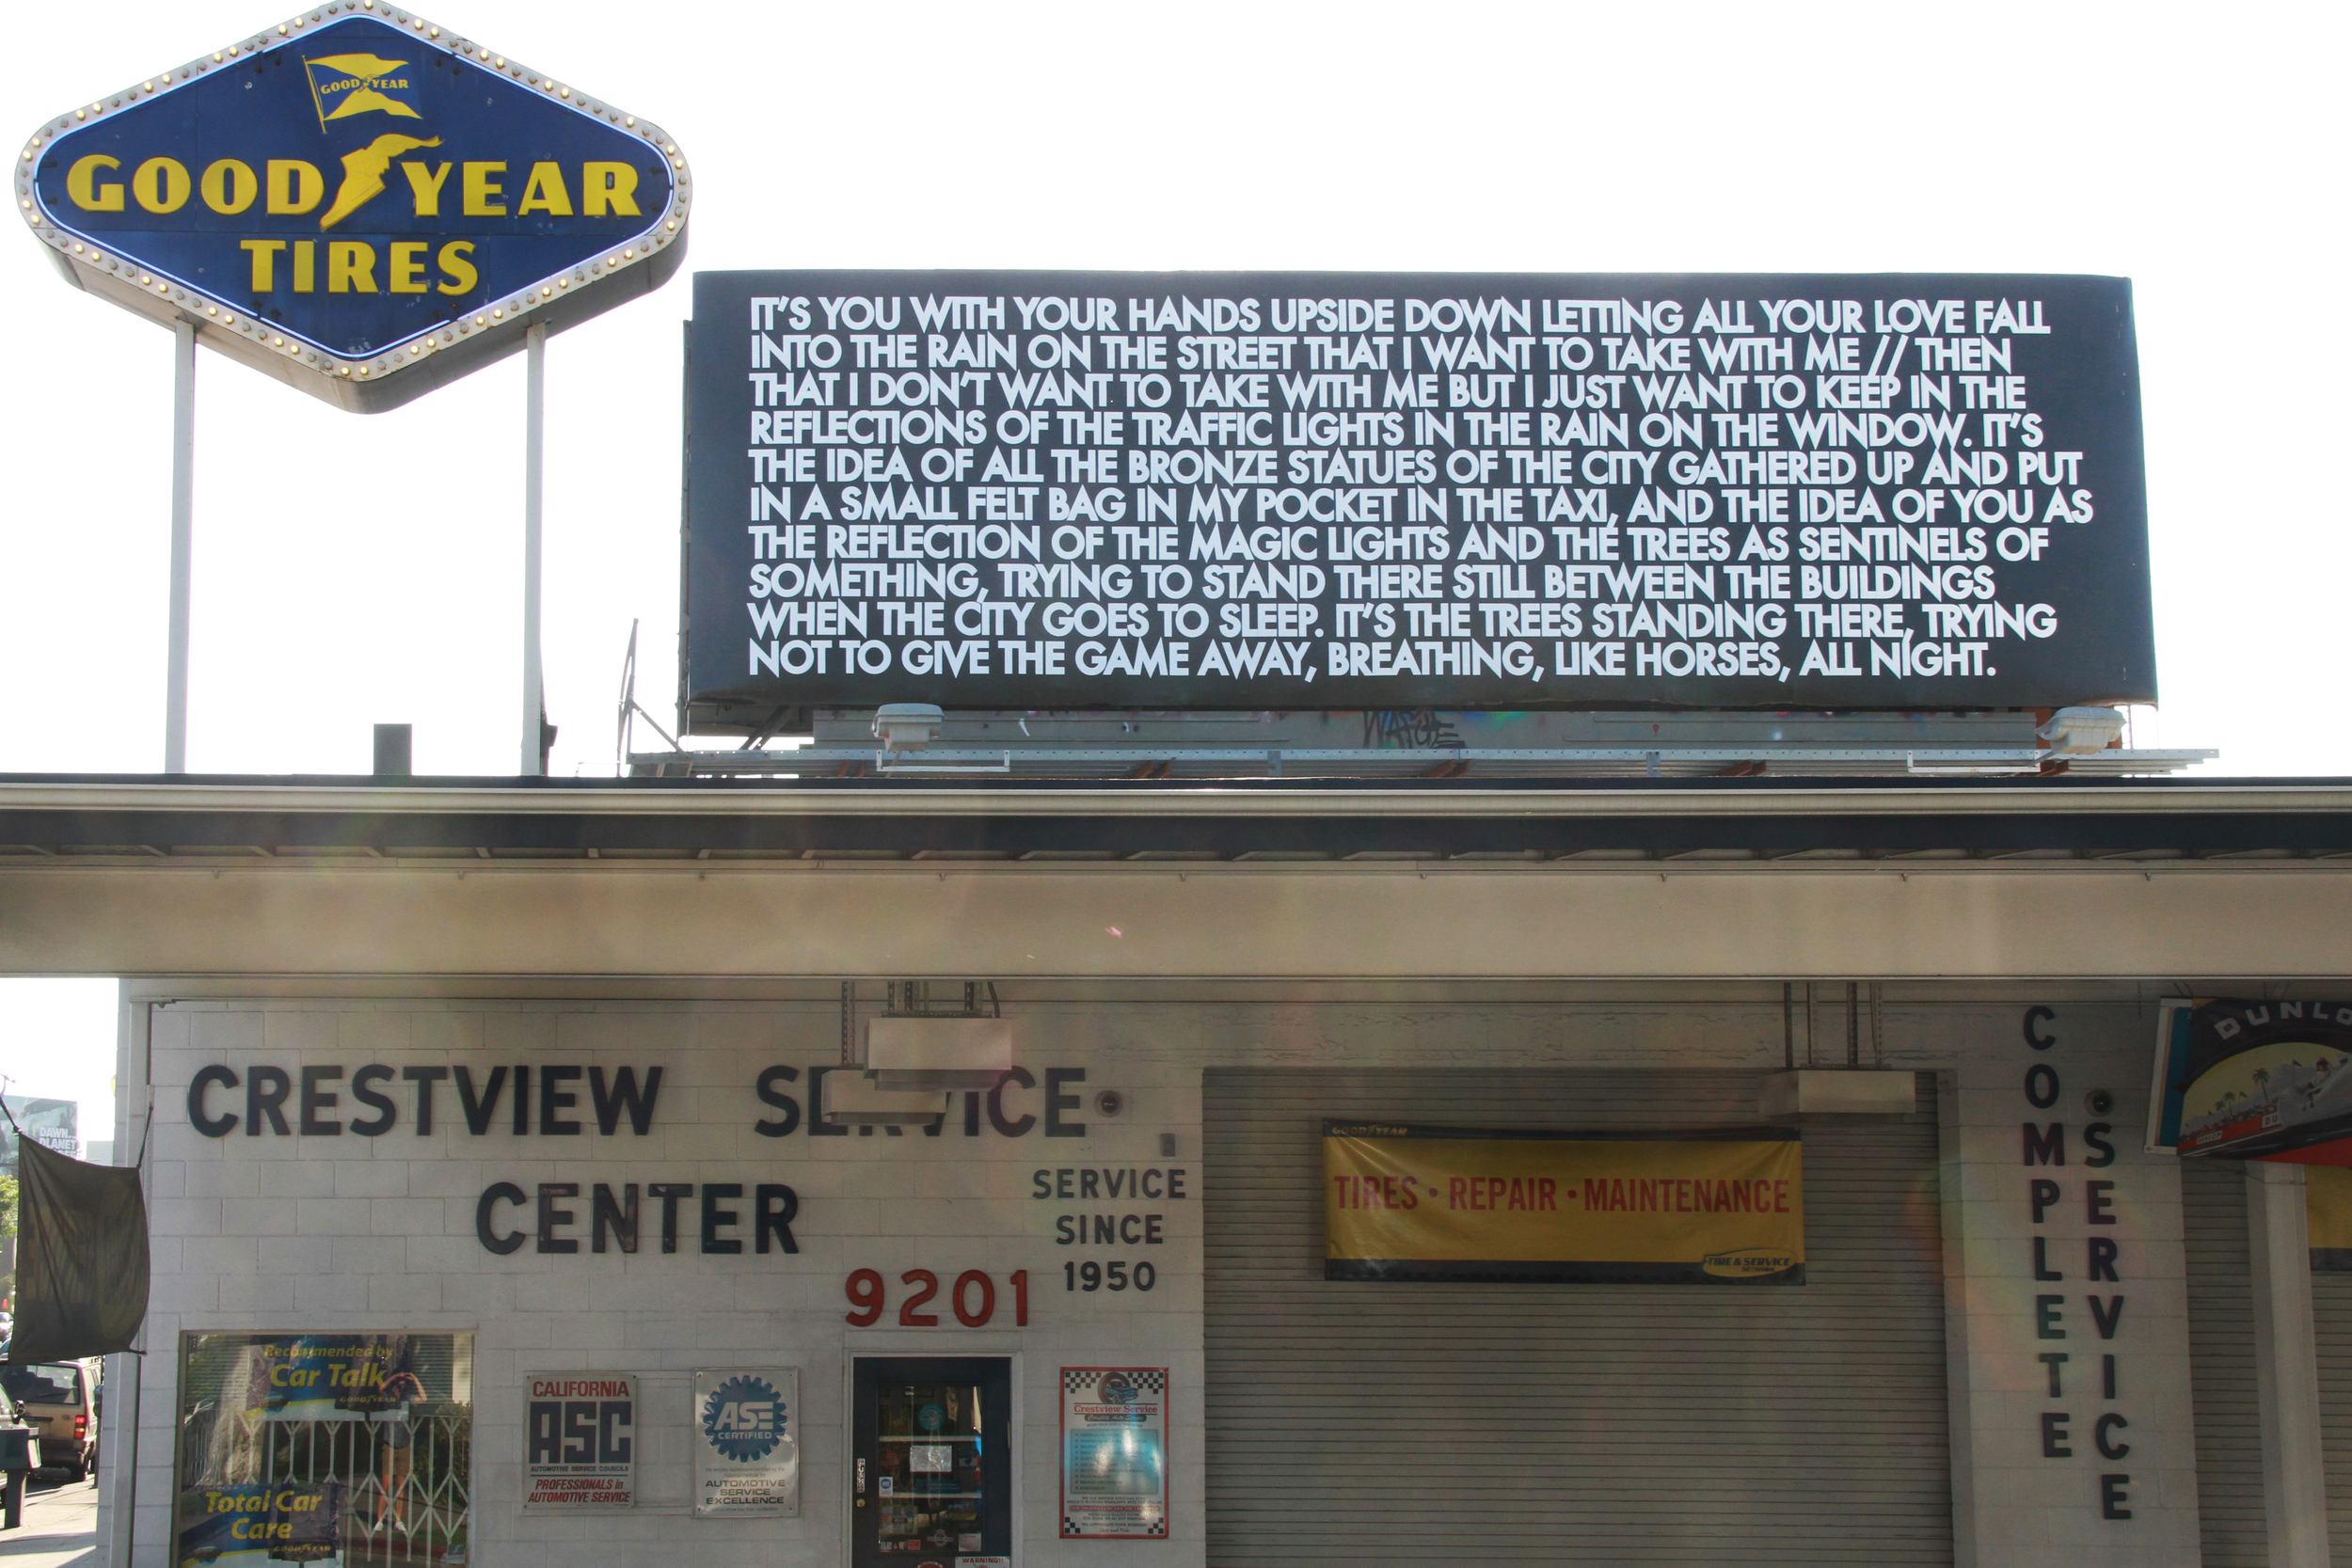 corrected LA BILLBOARD HANDS UPSIDE DOWN ROB SHOT.jpg